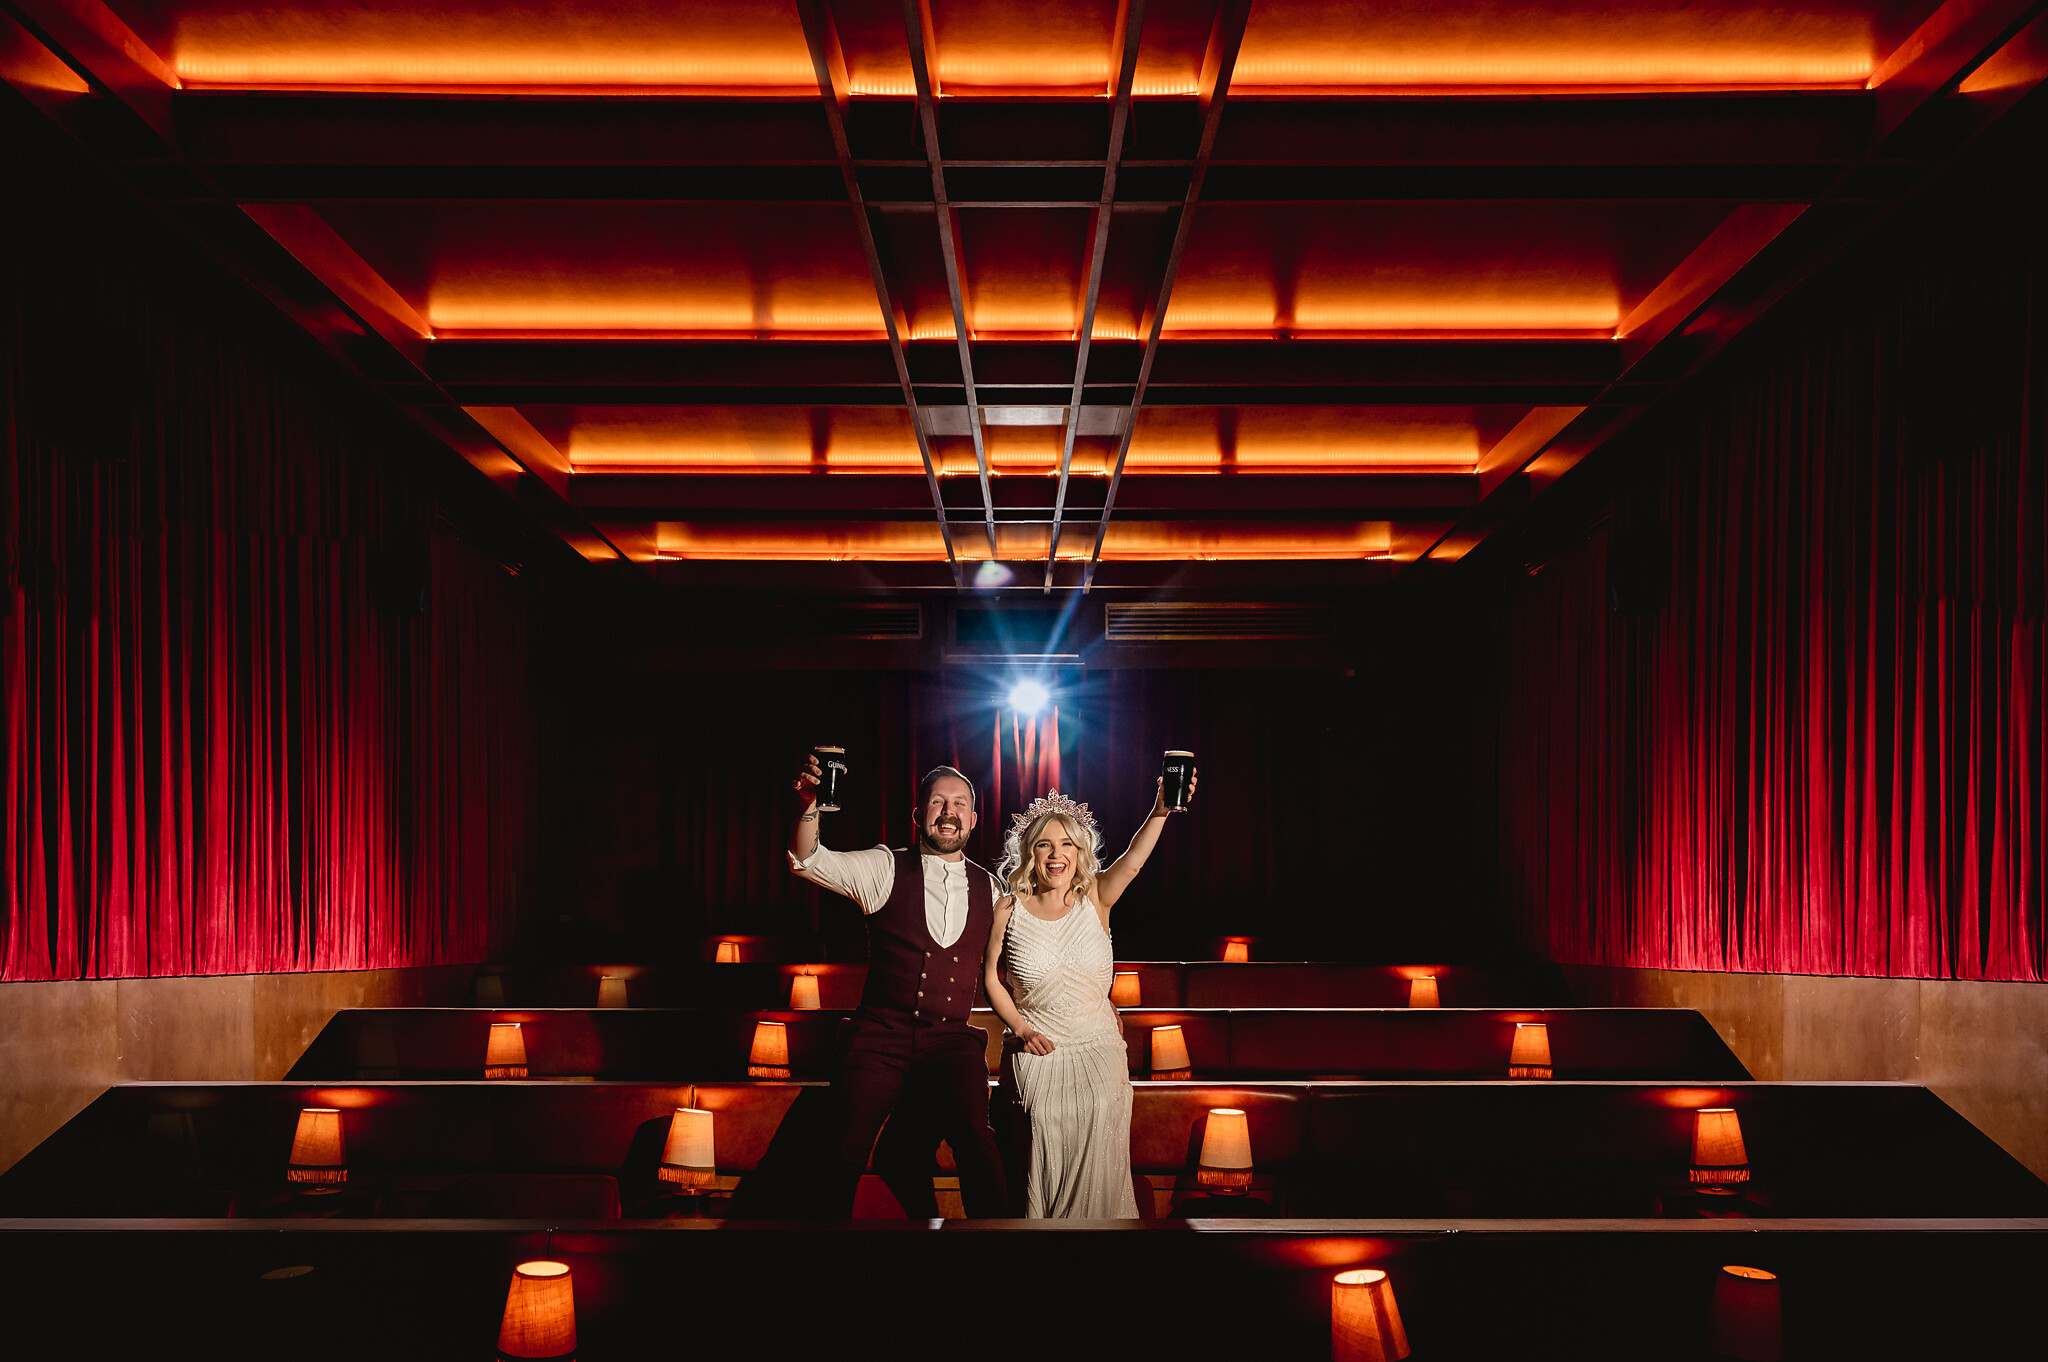 bride and groom portrait toasting with guinness in movie theater- photo by John Gillooley, ireland